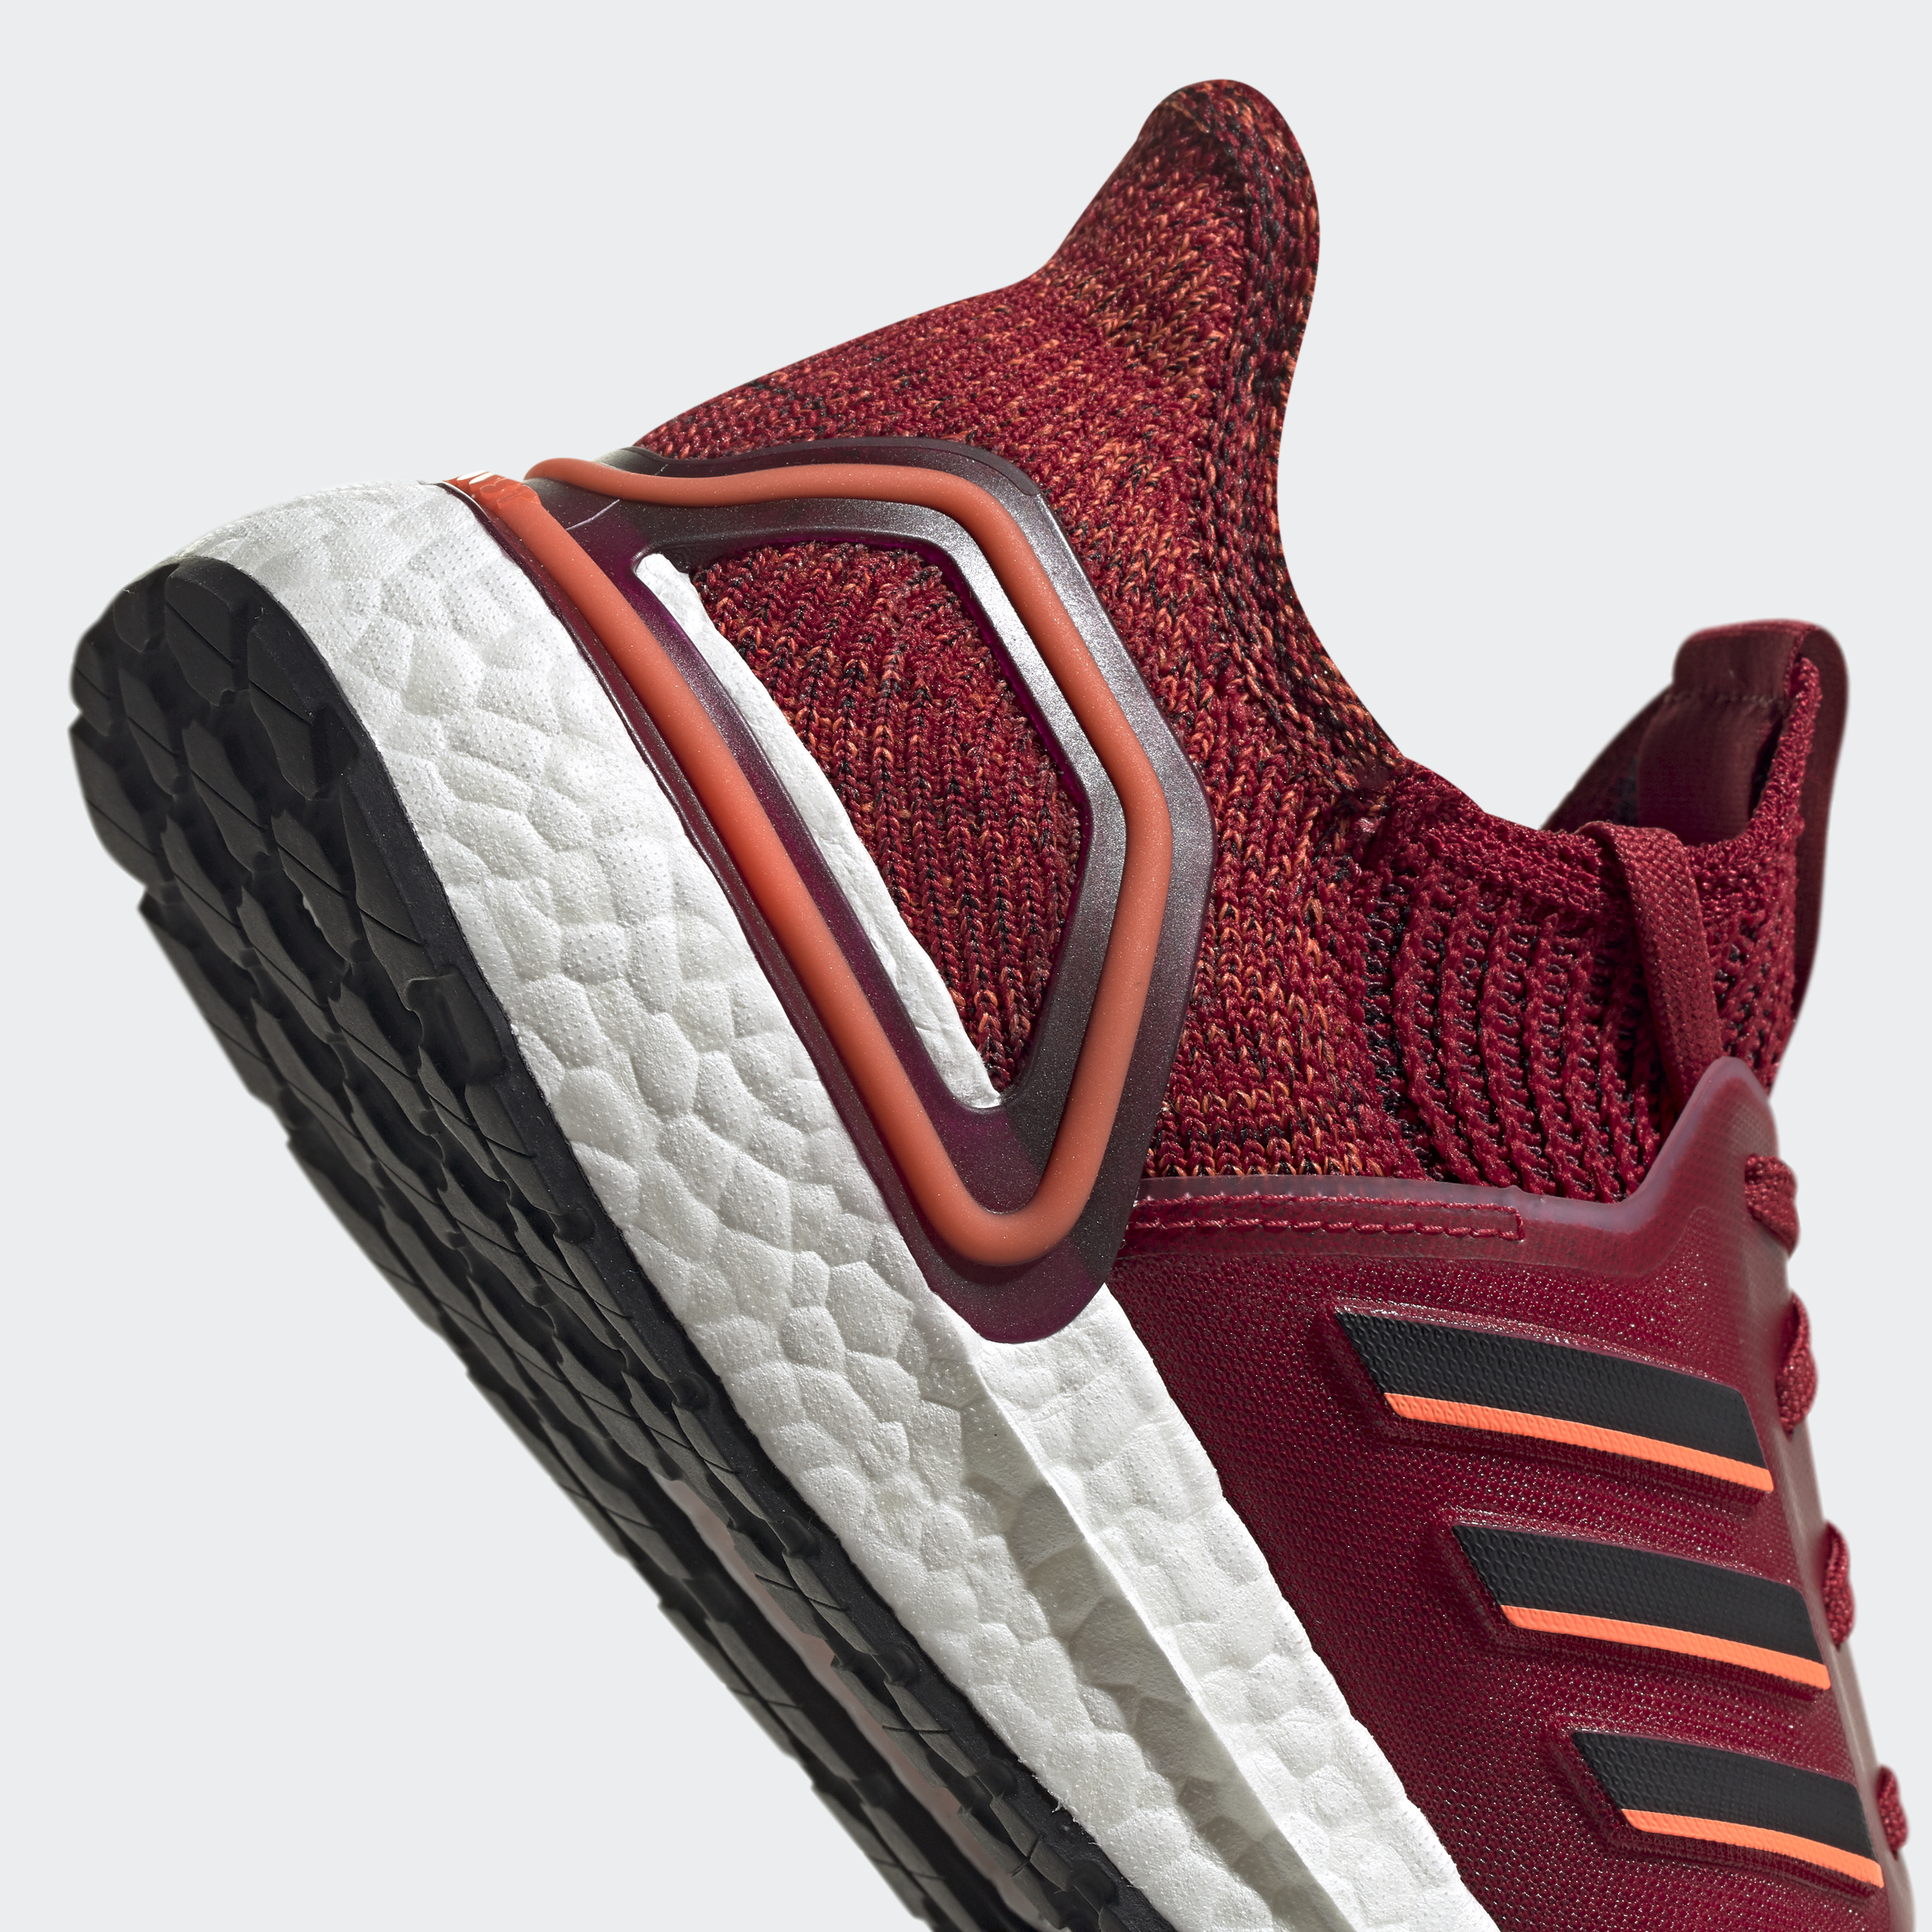 adidas-Ultraboost-19-Shoes-Athletic-amp-Sneakers thumbnail 95